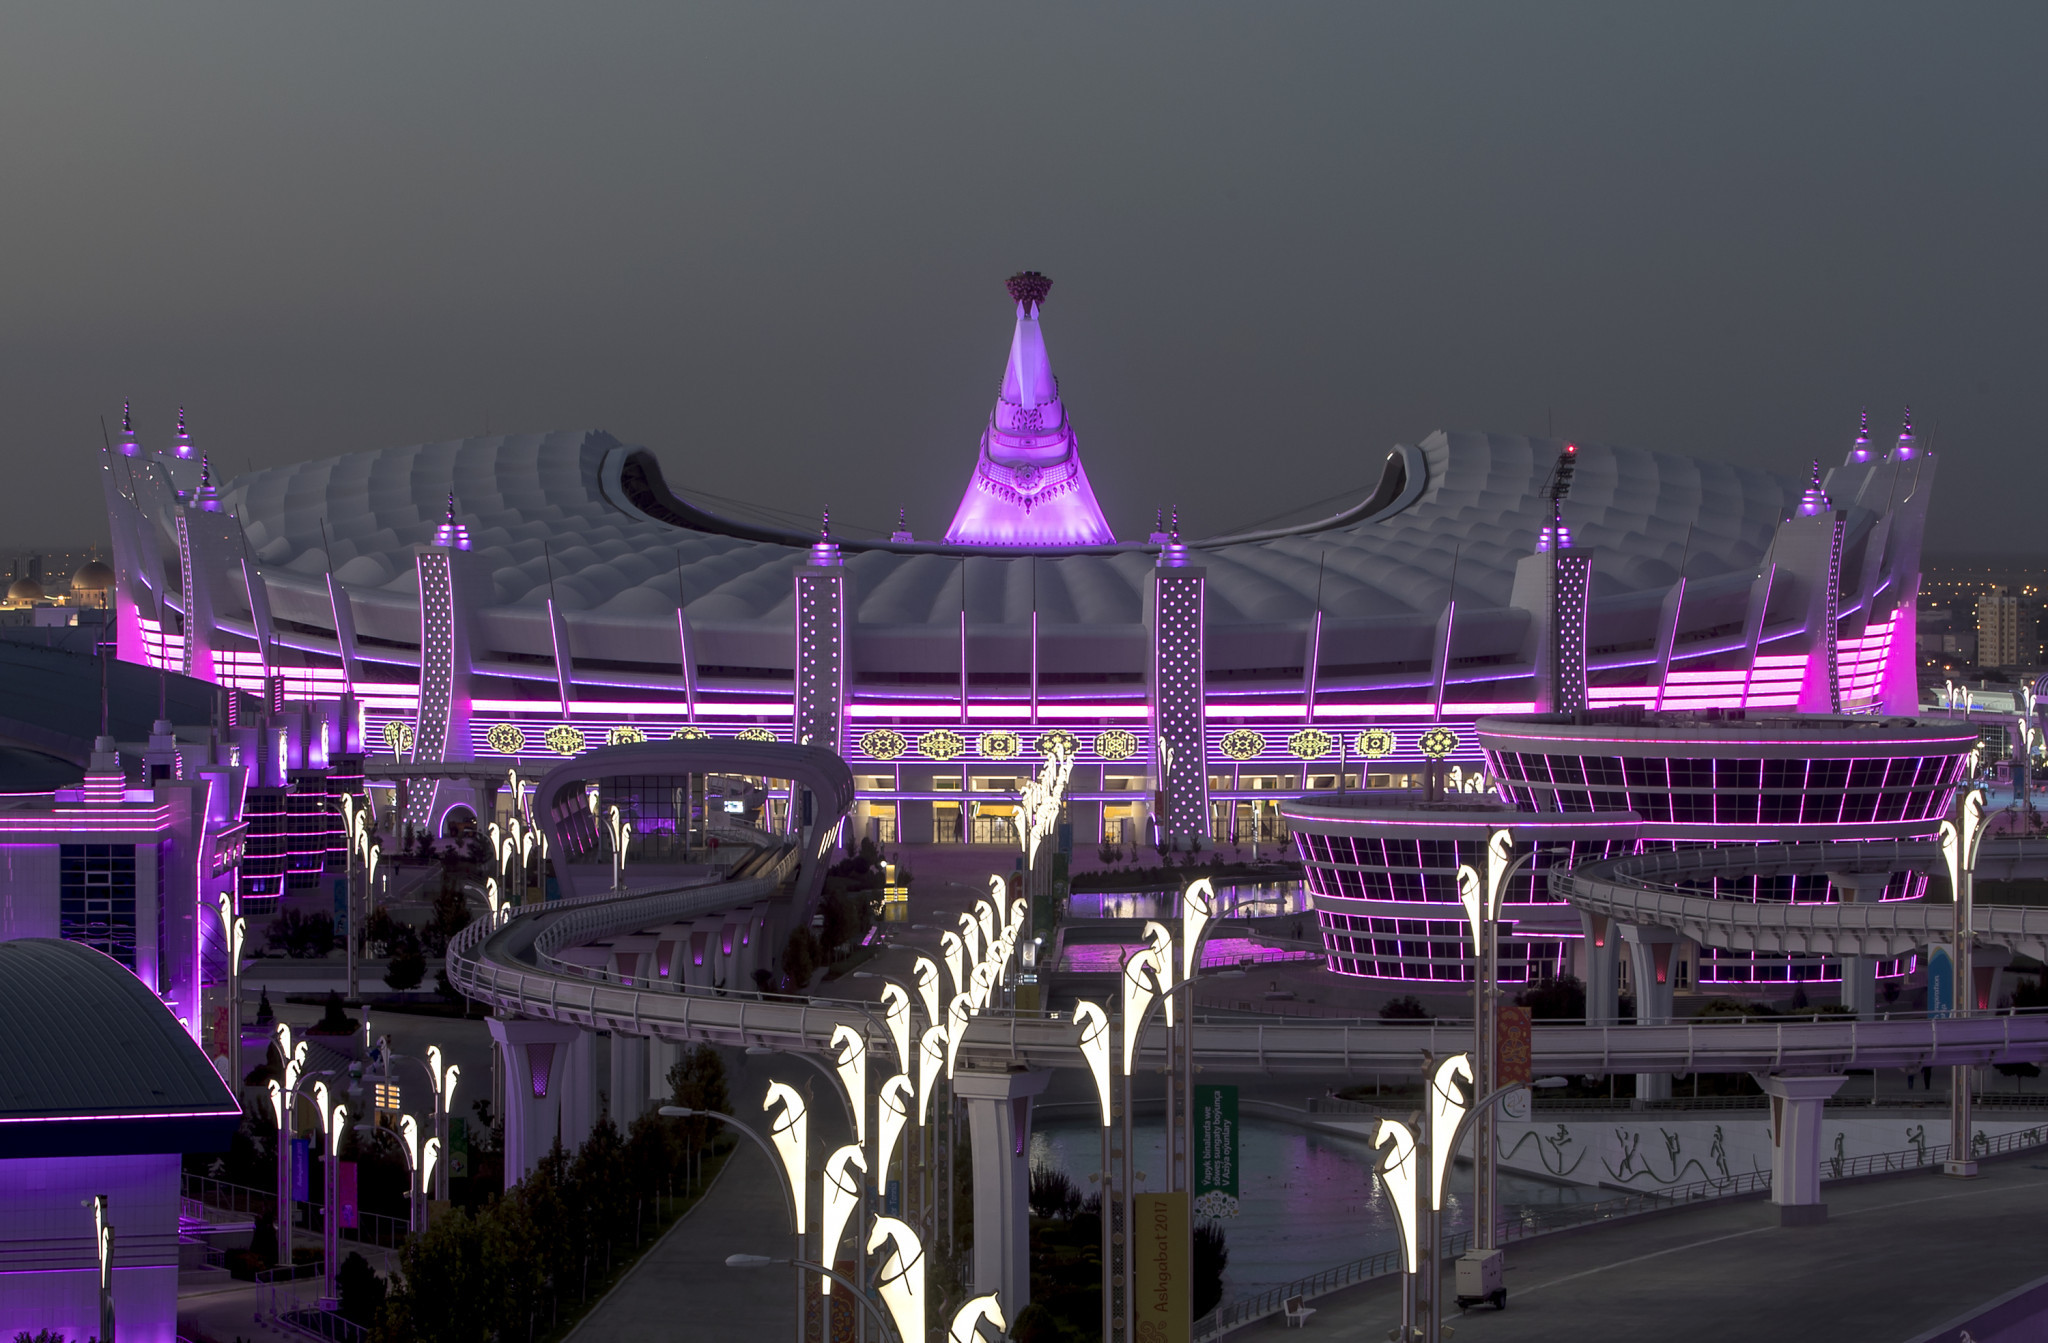 The Ashgabat Olympic Complex is playing host to the 2017 Asian Indoor and Martial Arts Games ©Ashgabat 2017/Angelos Zymaras/Laurel International Management